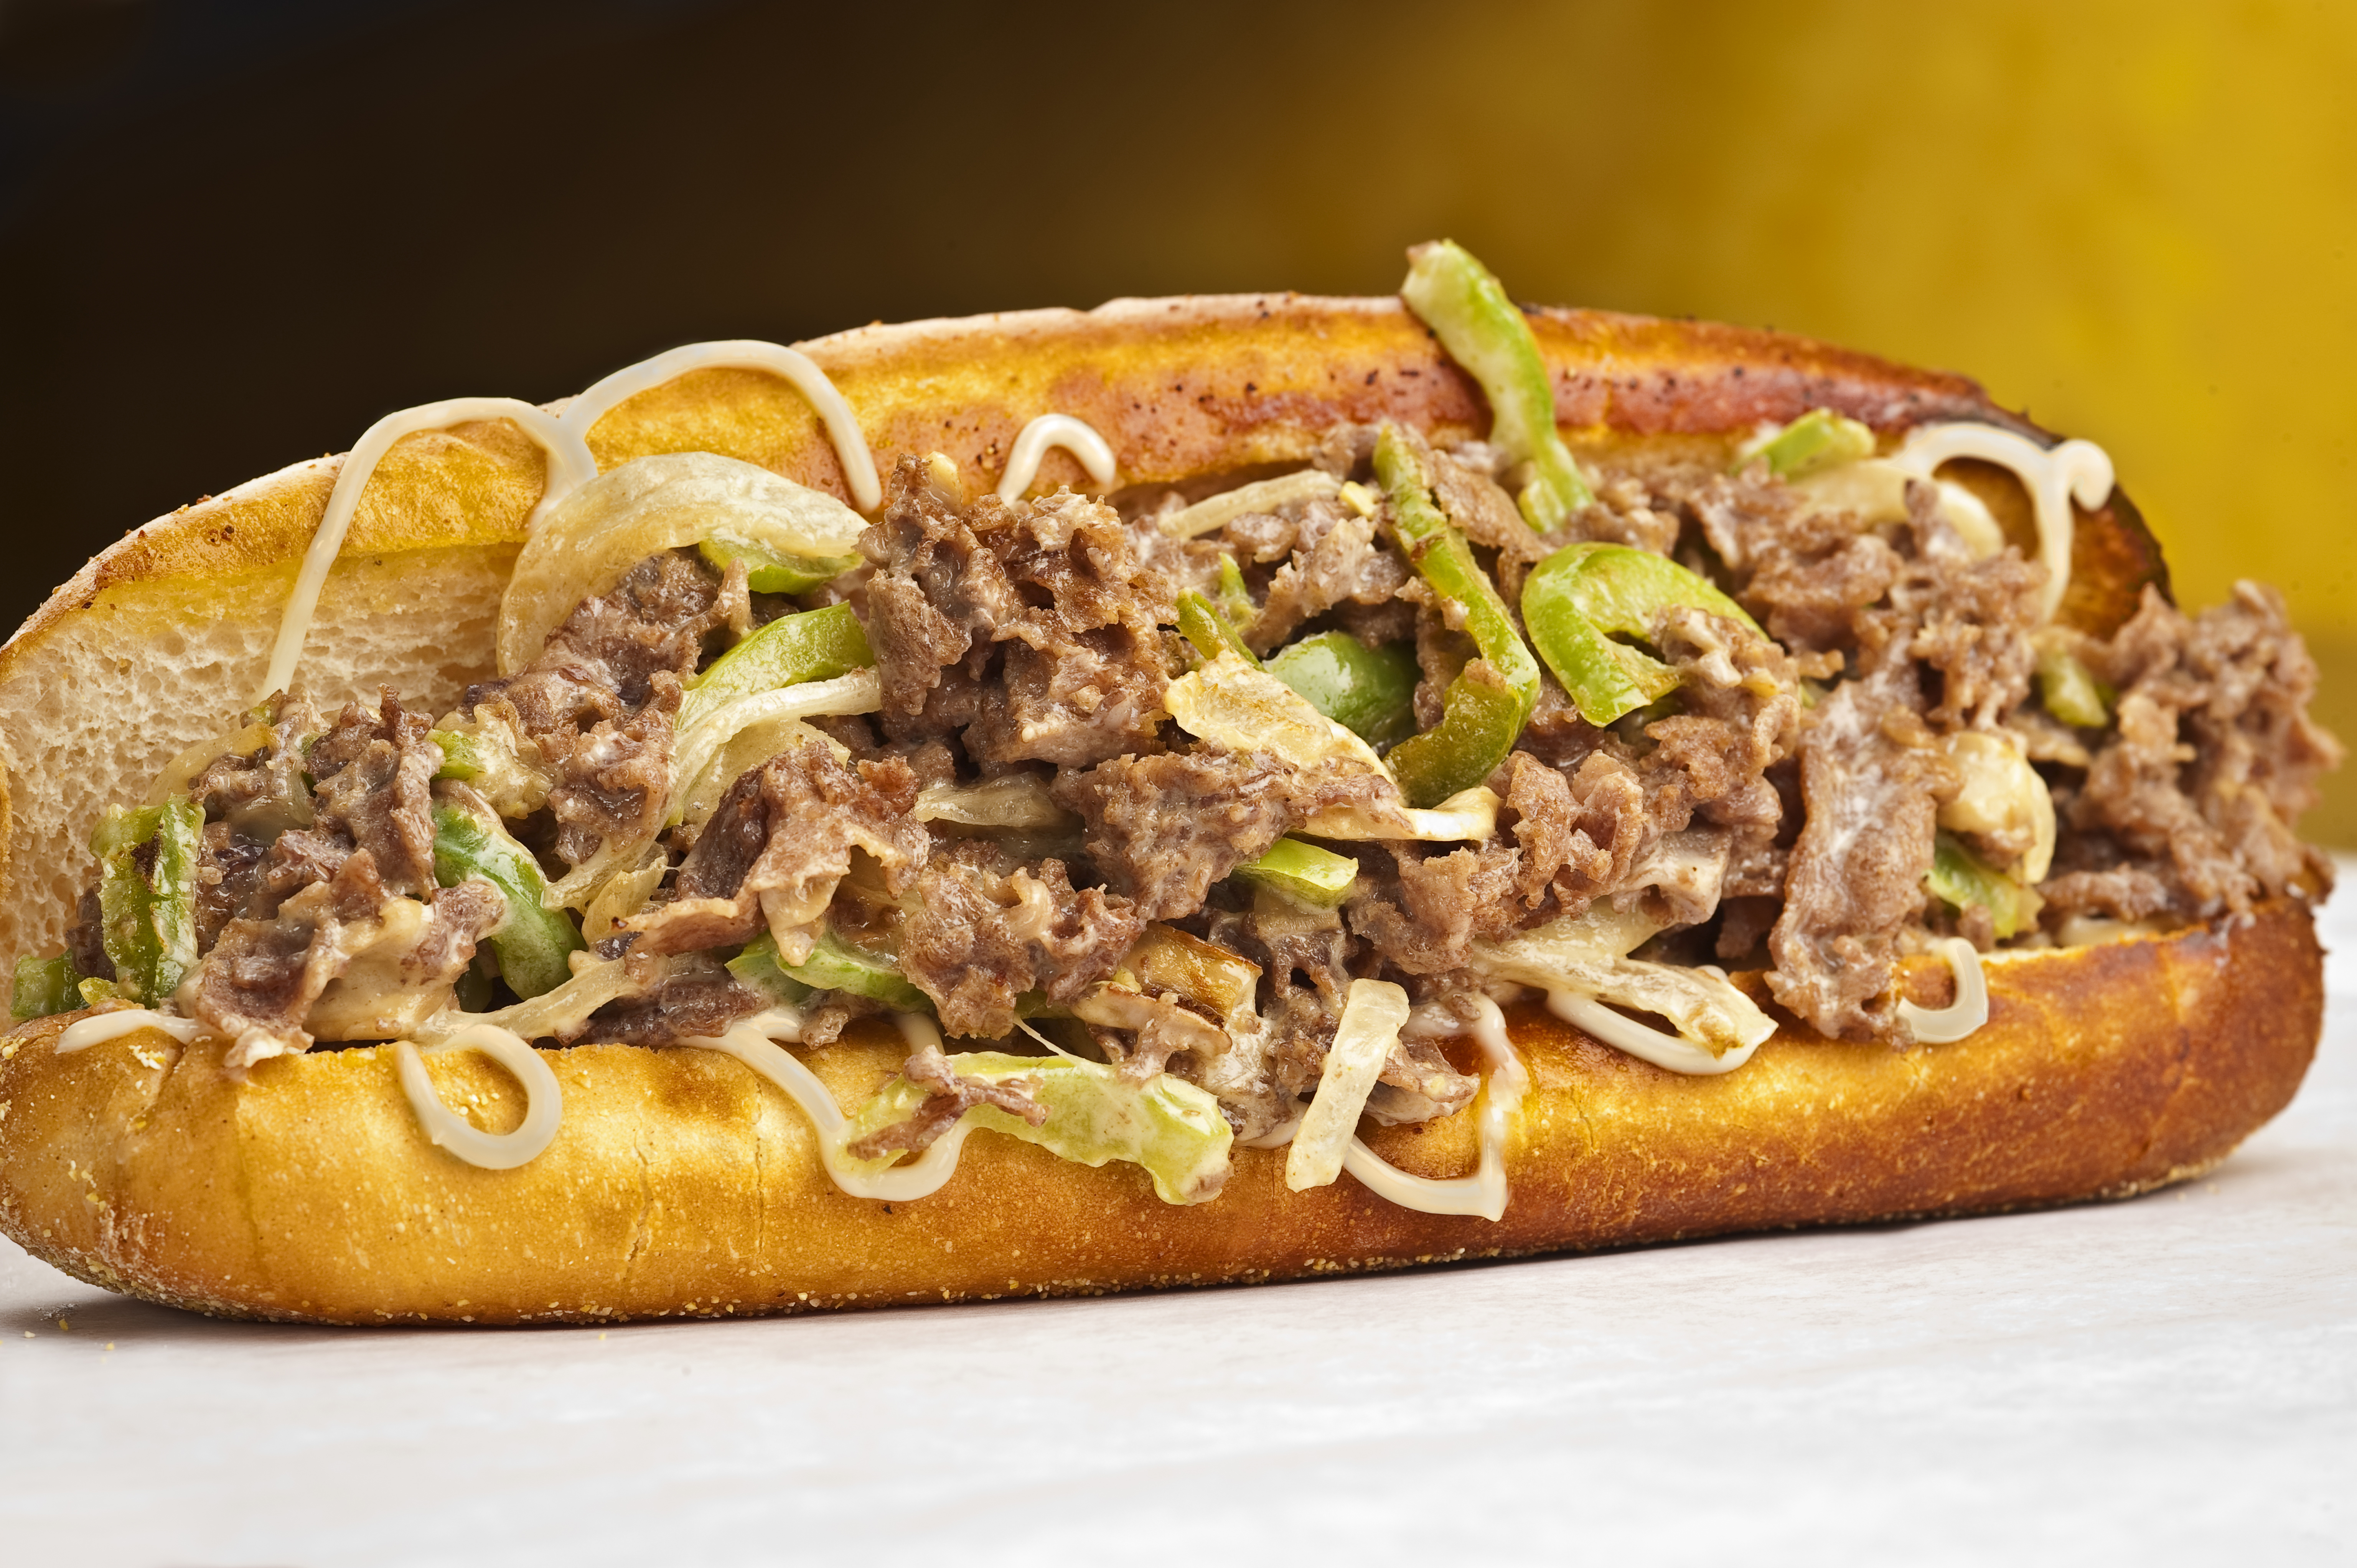 Philly cheese steak picture